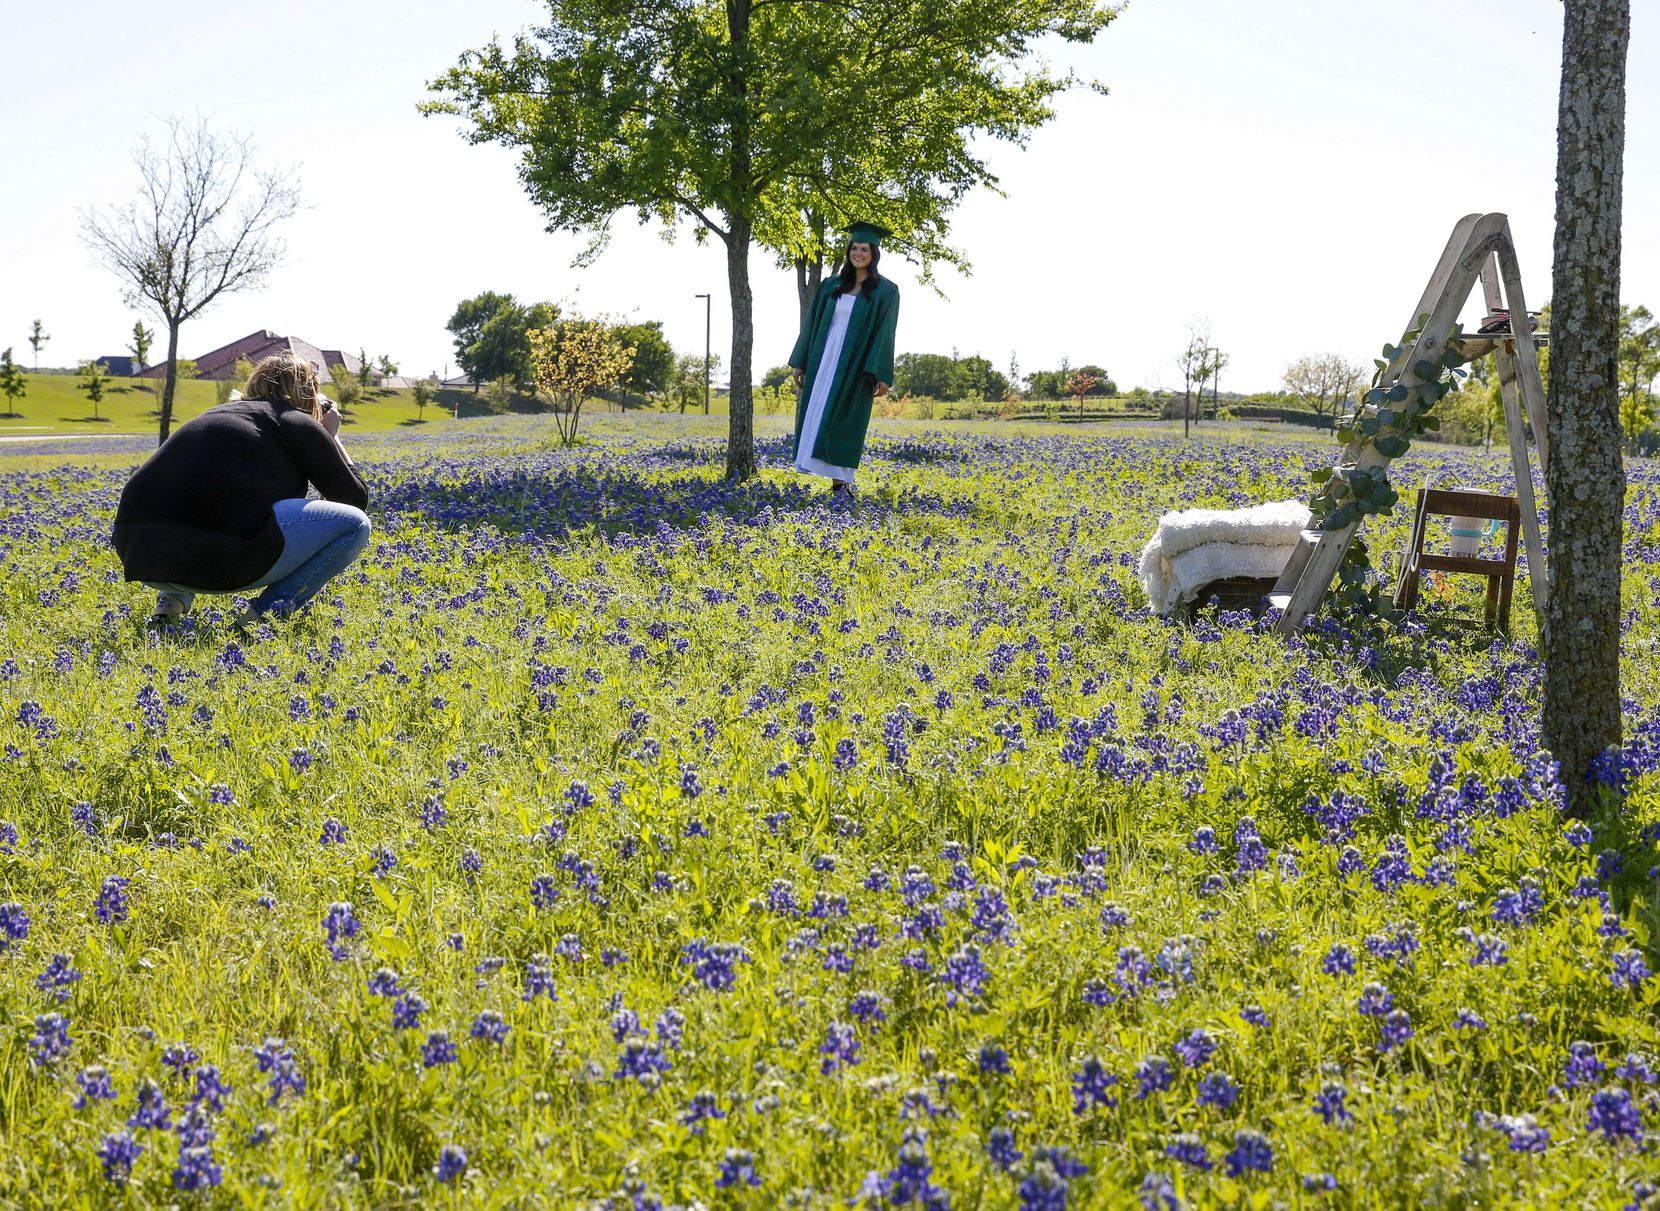 Jenny Burns photographed Landry Thompson last spring in a bluebonnet field in a median on West Bethany Drive in Allen. If you take pictures this year, remember to keep a safe distance from others.